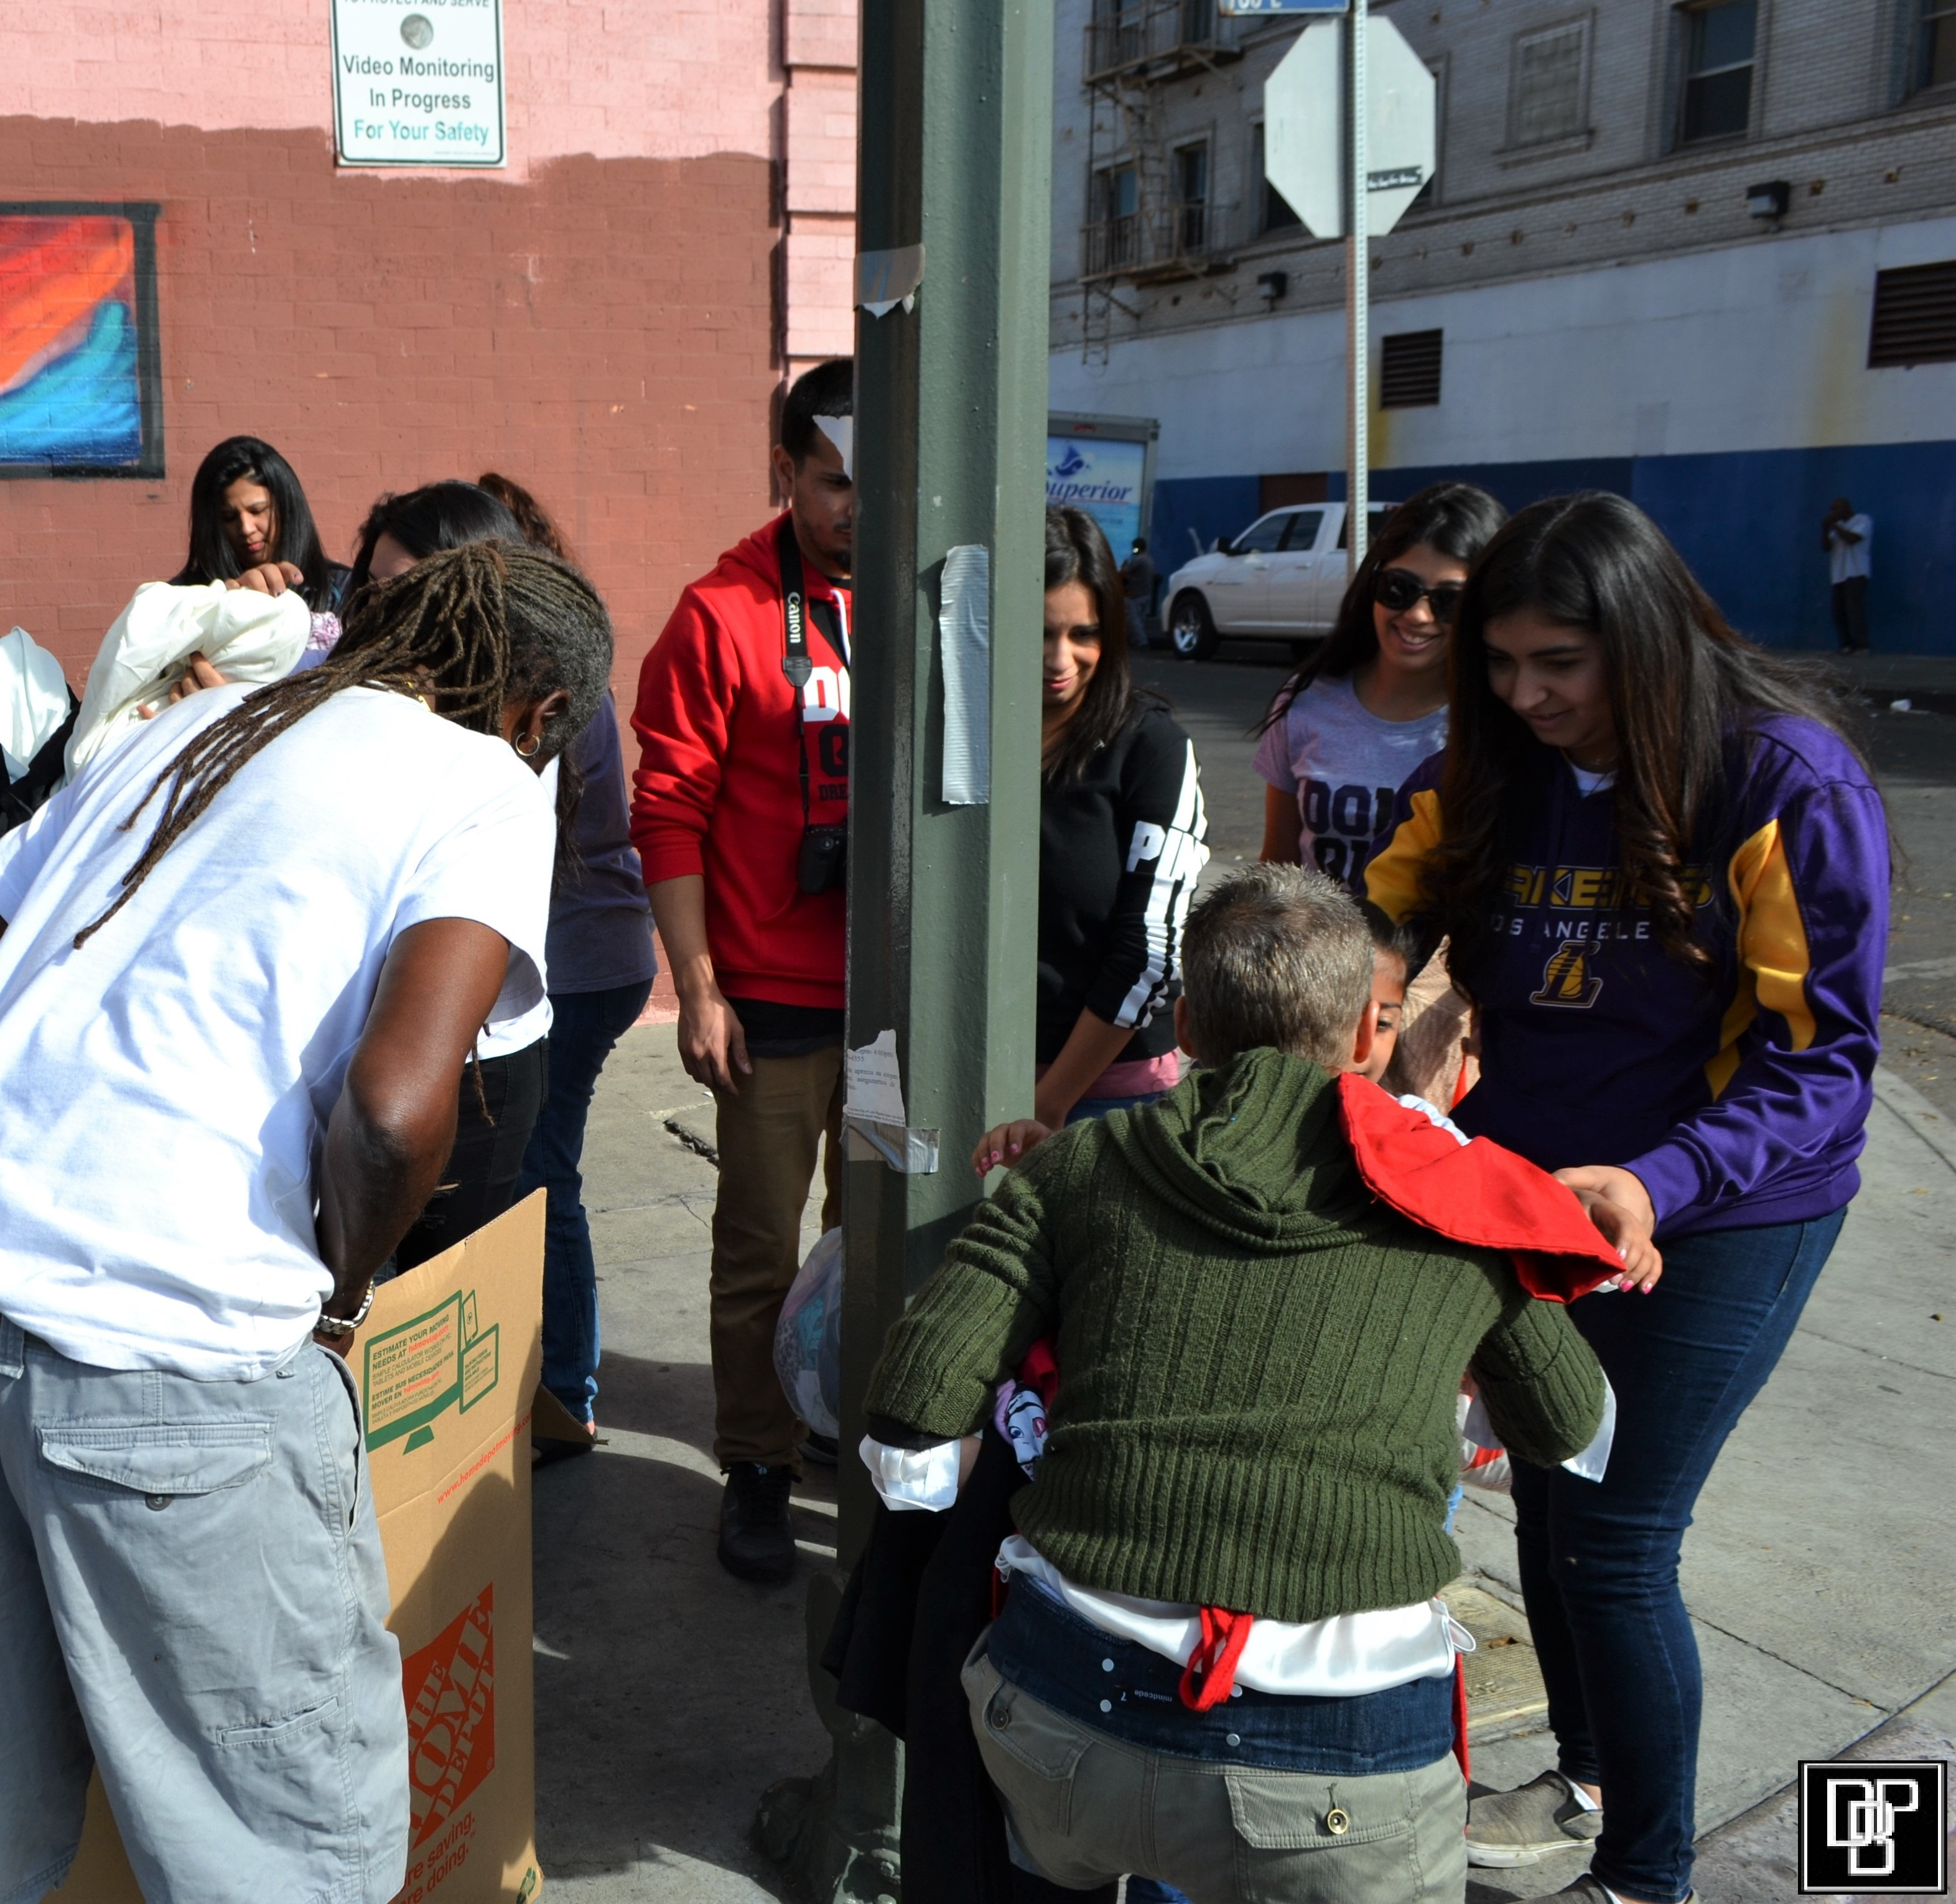 Volunteers help distribute food and clothing. Photo by Manuel Sterling.